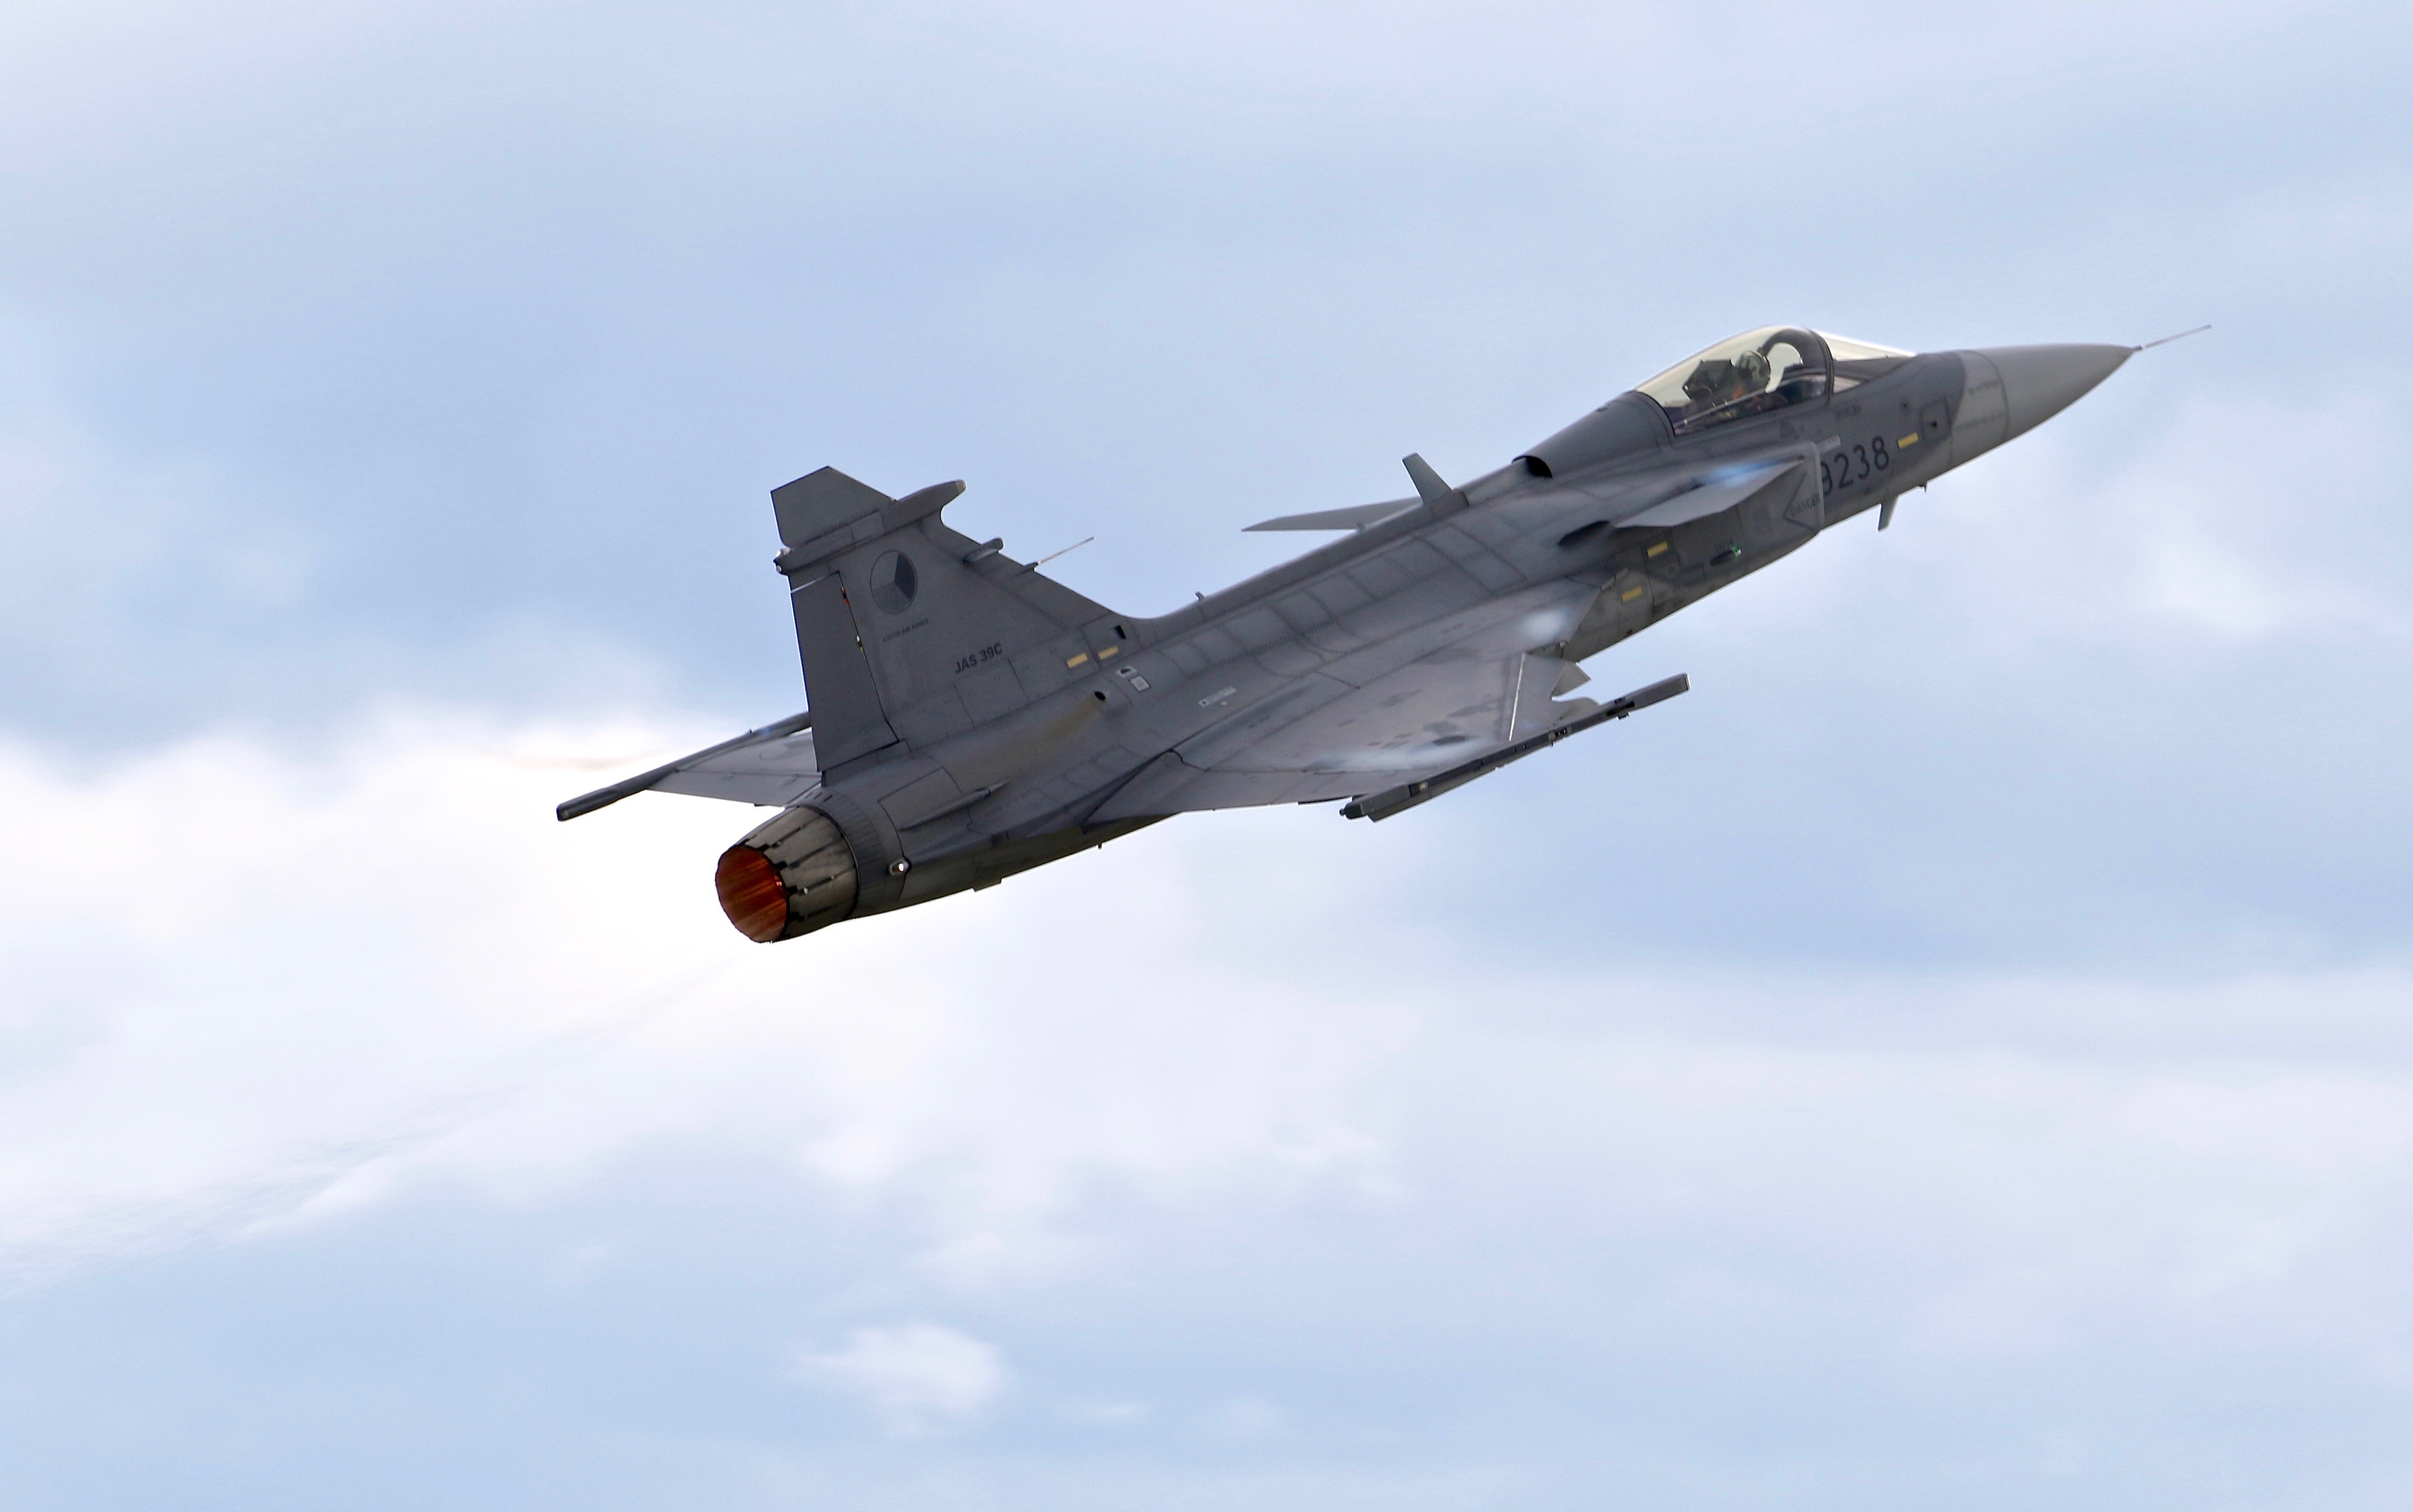 Czech AF Saab jas39c Gripen 9238 from 211 Squadron based at Caslav Airbase